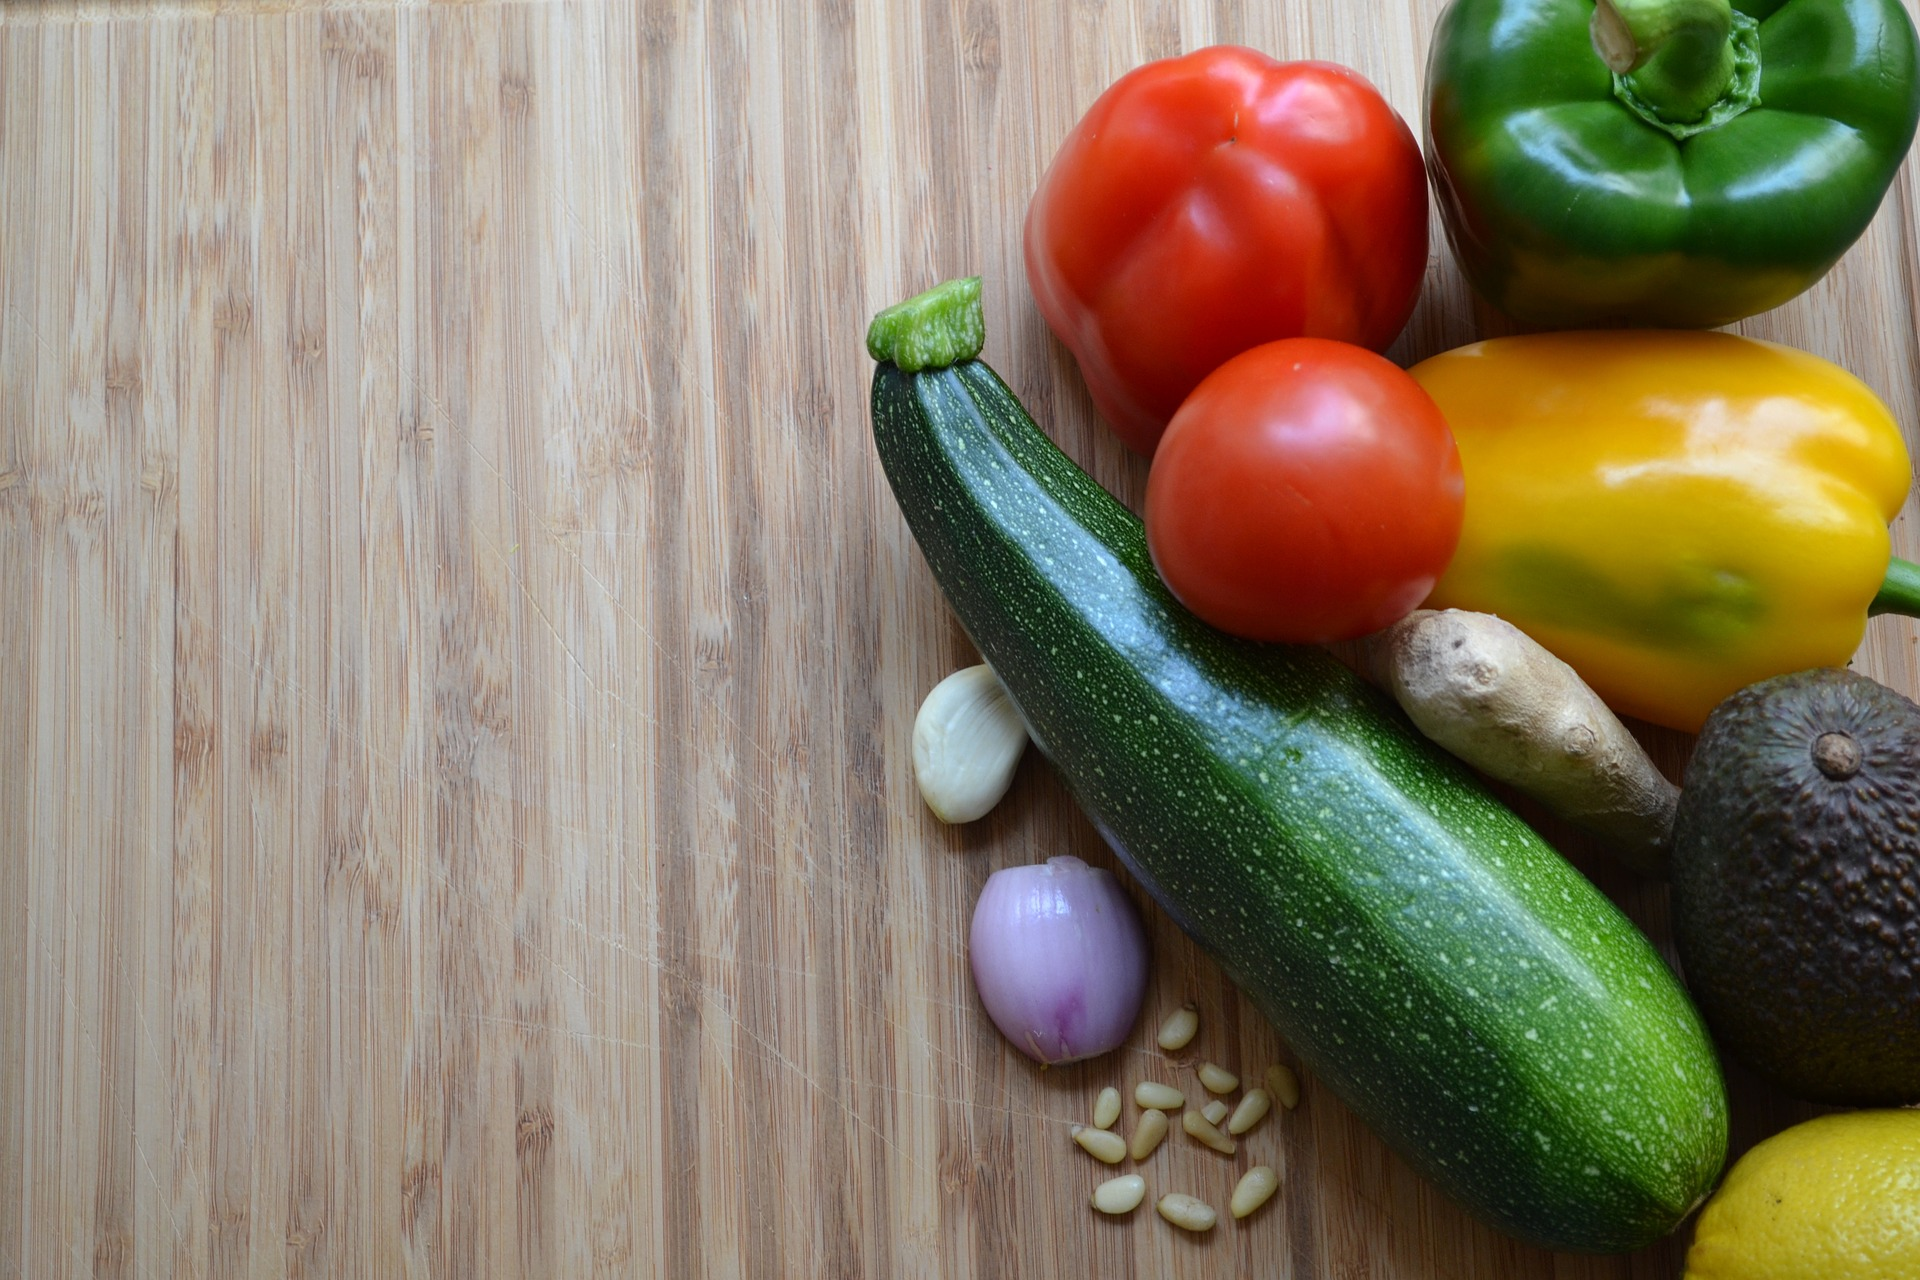 Zucchini, bell pepper, tomato, and onion arranged on a neutral background